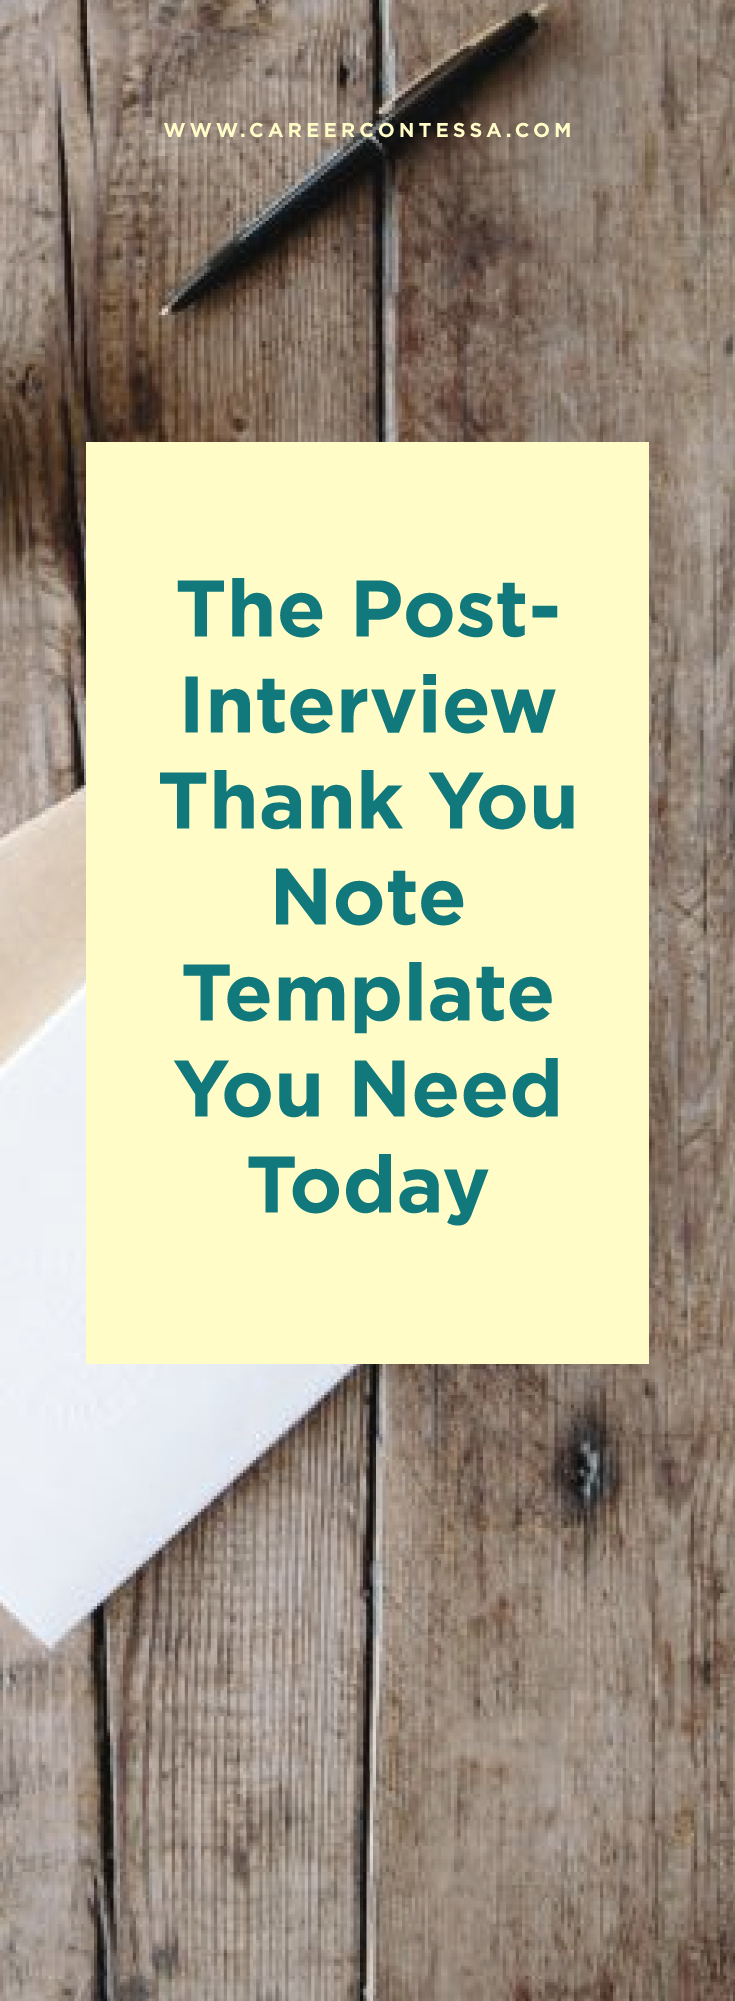 the postinterview thank you note template need today billing specialist resume objective best modern cv free writing a good career